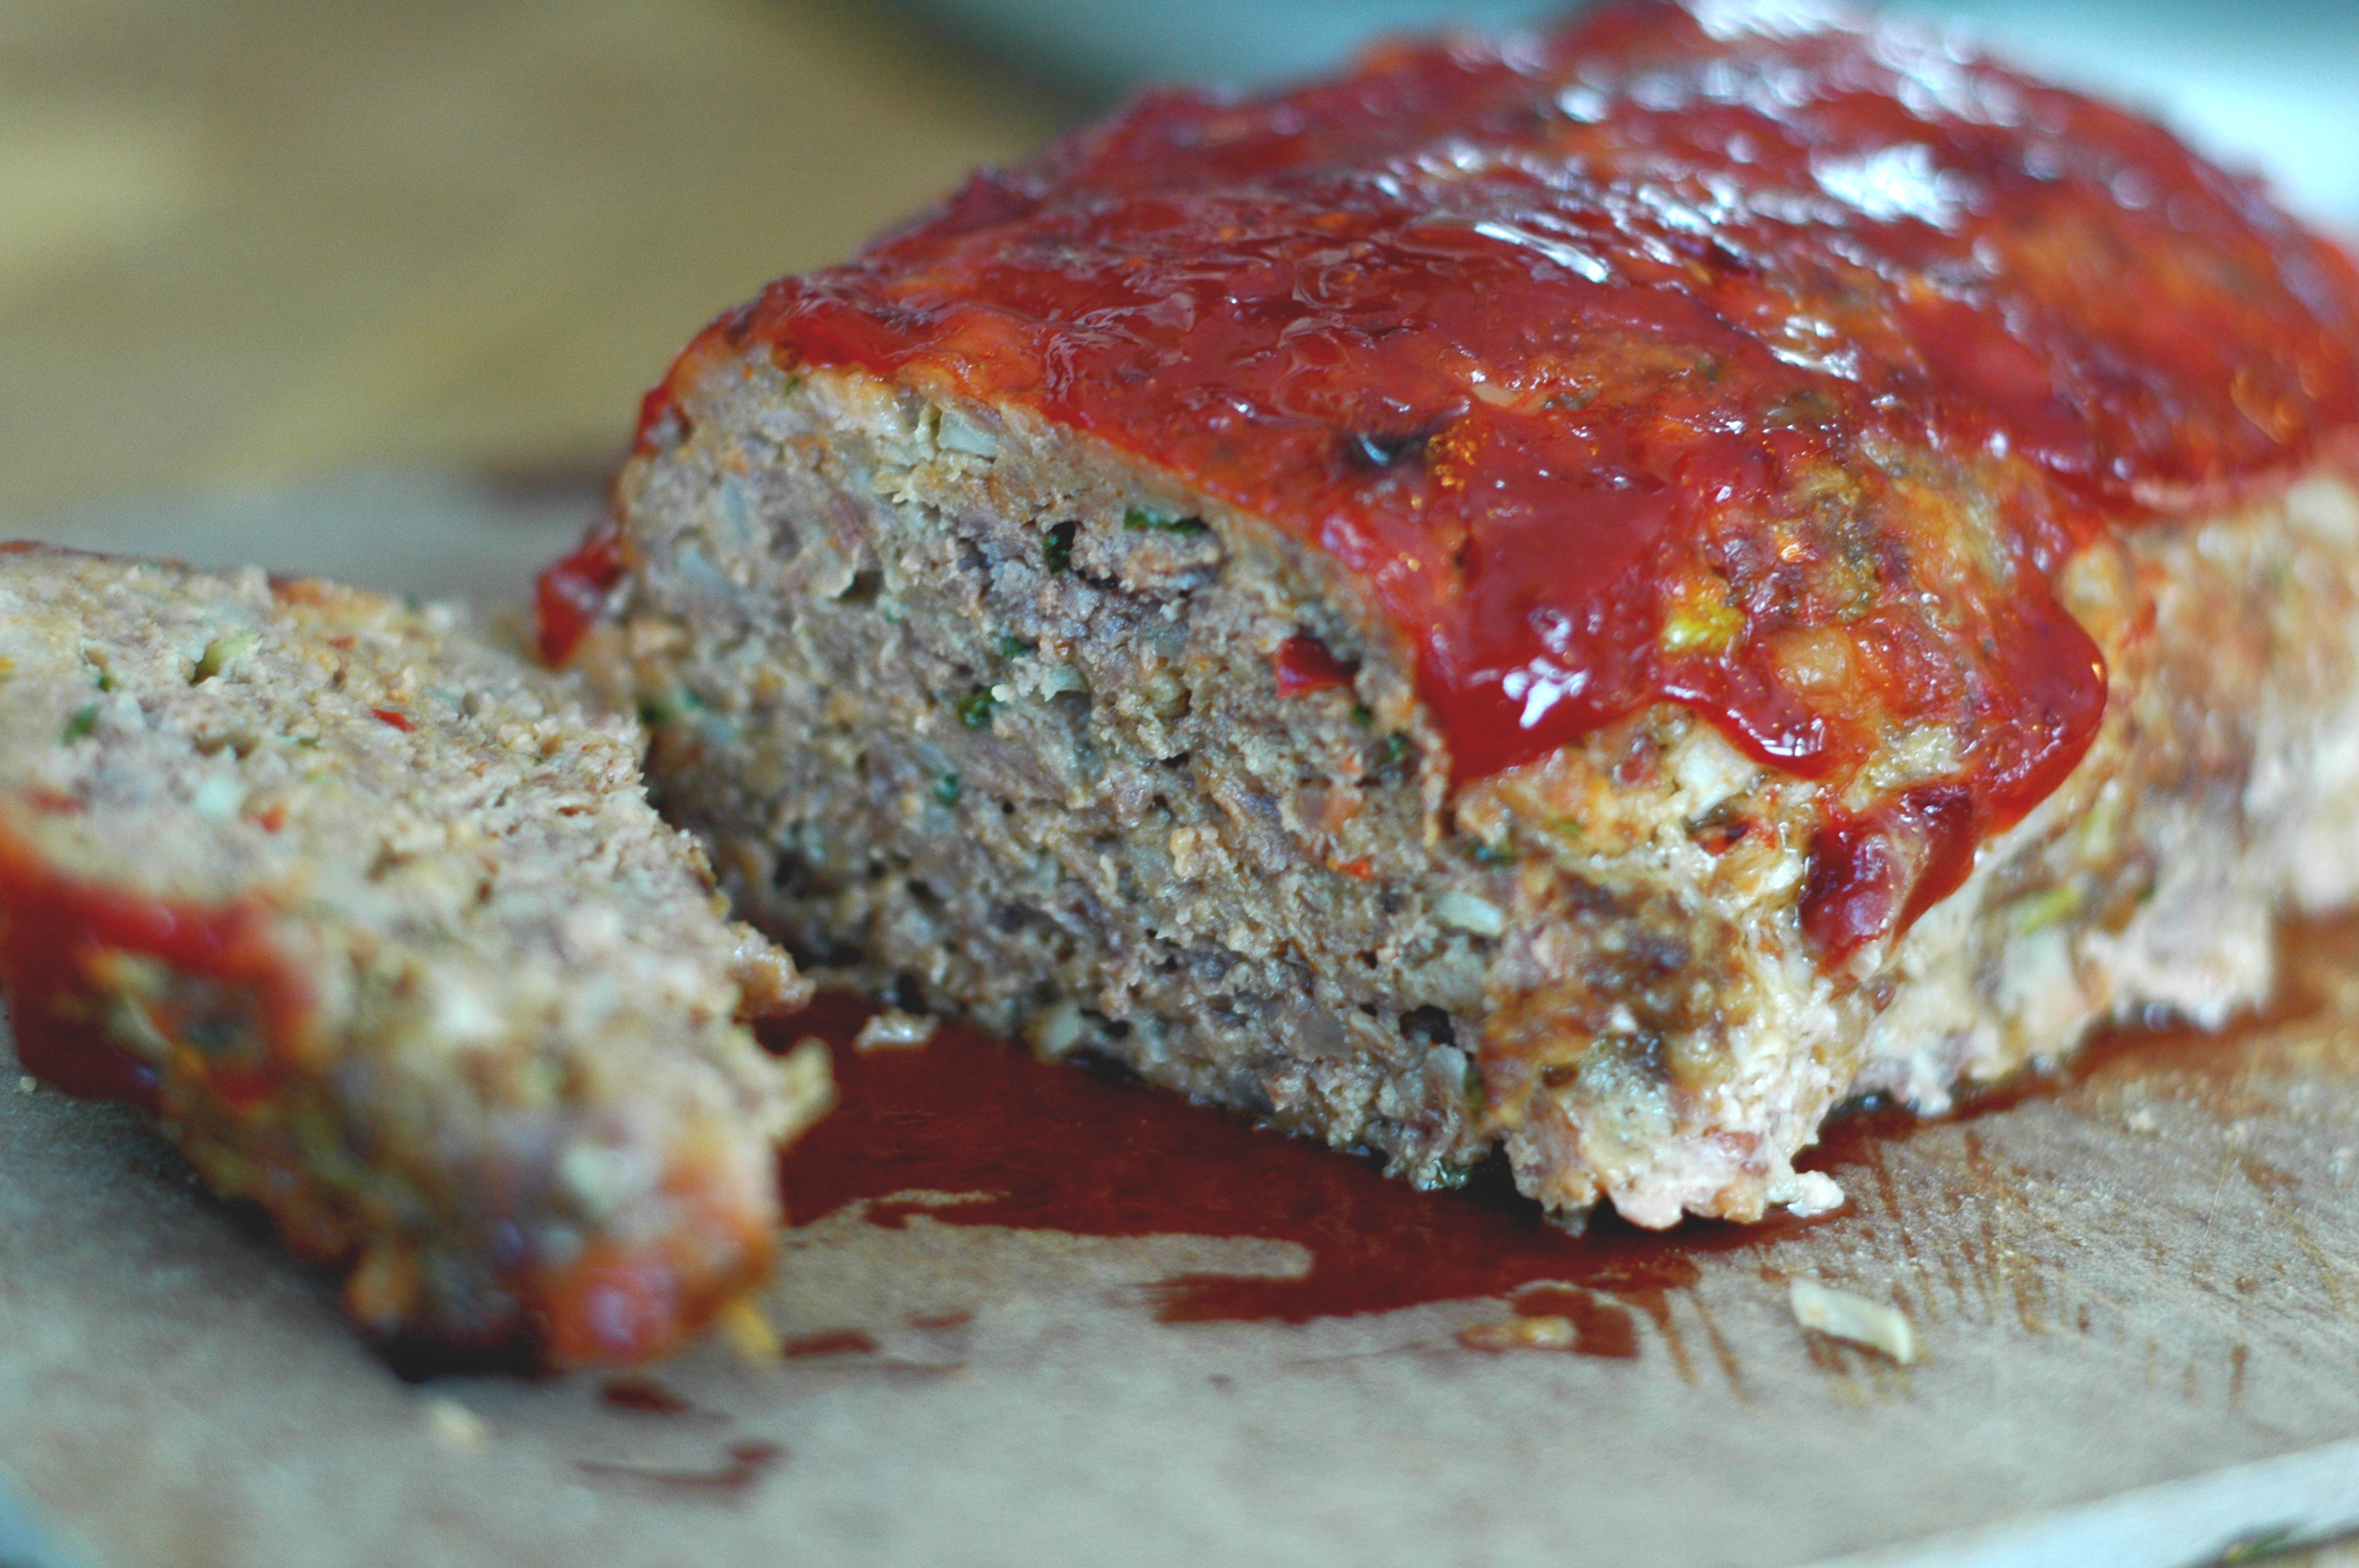 Bacon Chipotle Meatloaf - but i'm hungry